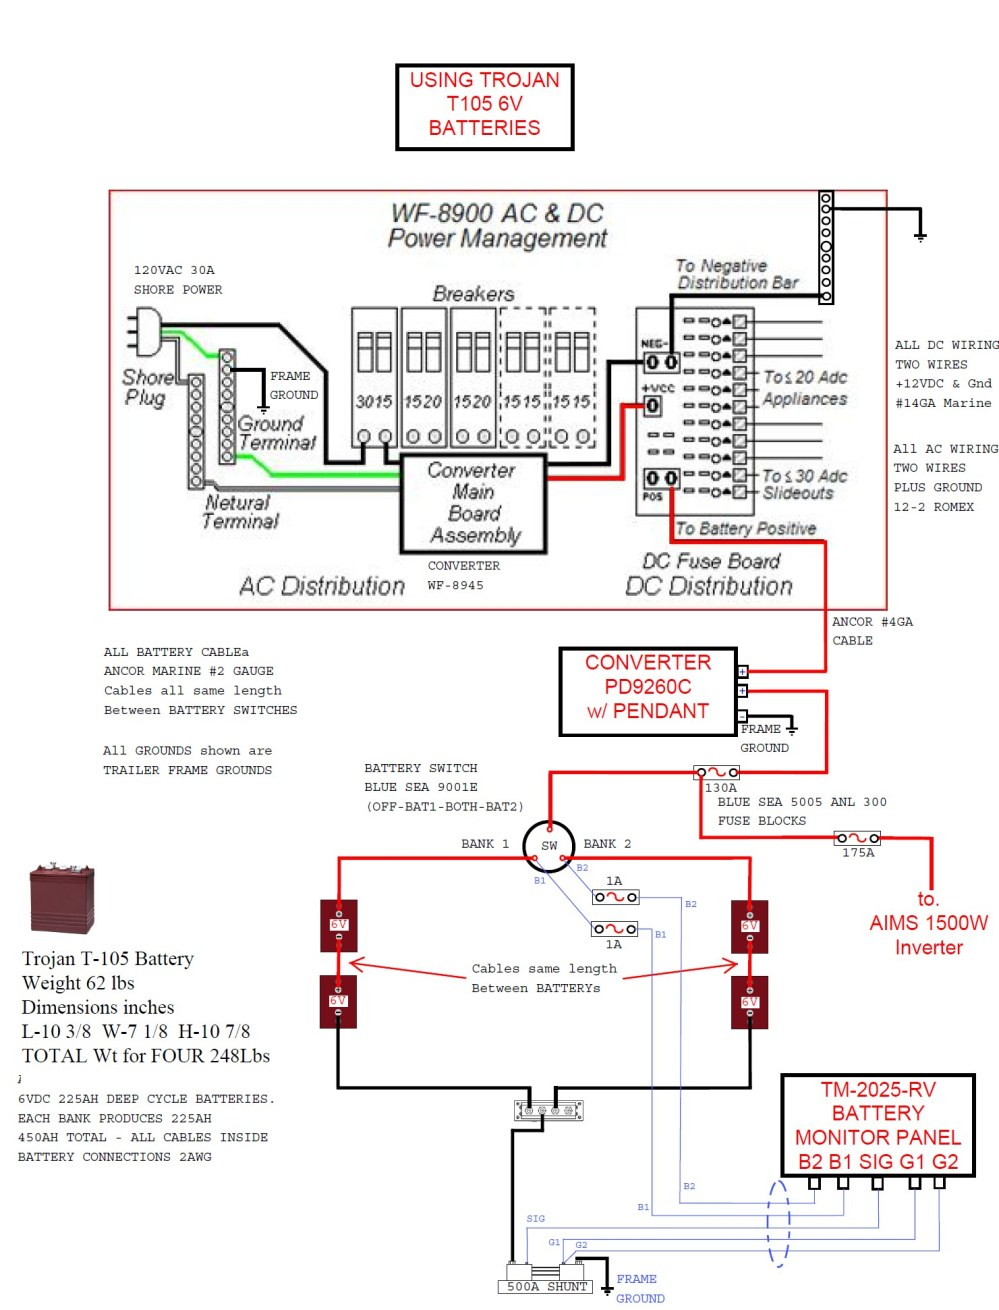 medium resolution of jayco eagle wiring diagram sample navistar engine diagram jayco eagle wiring diagram wiring diagram for jayco